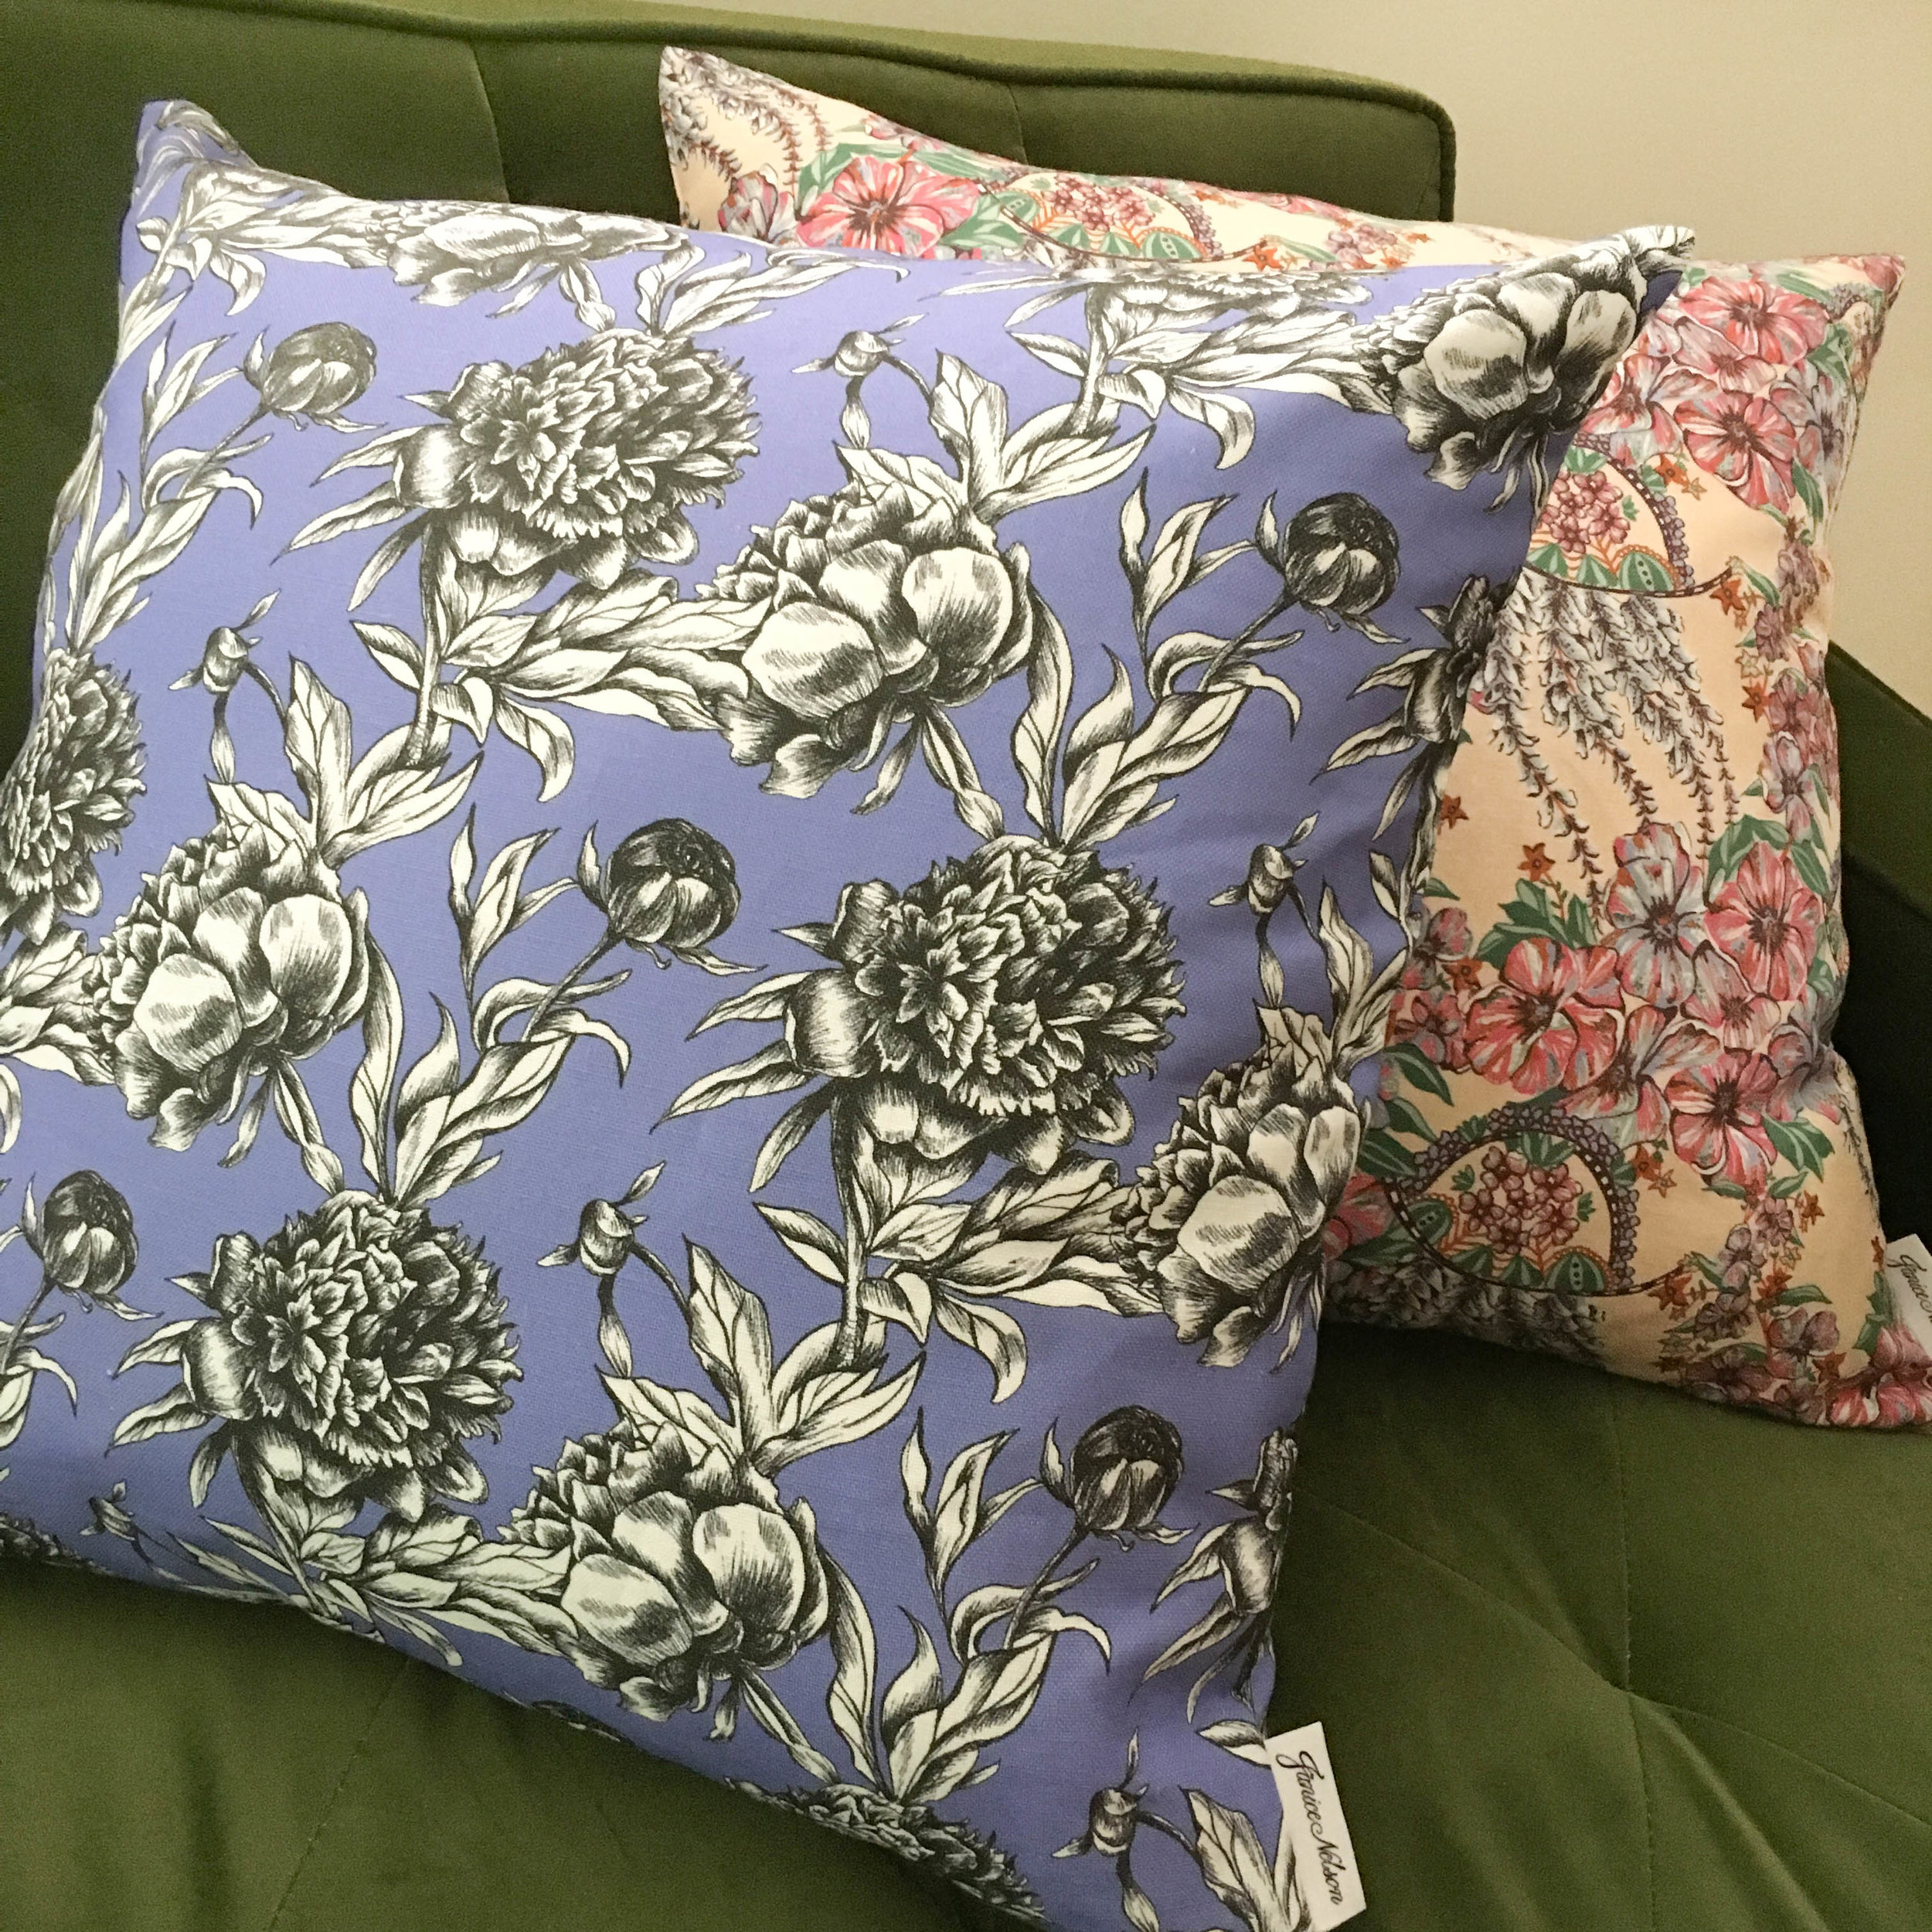 Bold and unique 20x20 Paeonia pillow has illustrative black and white peonies on a purple background